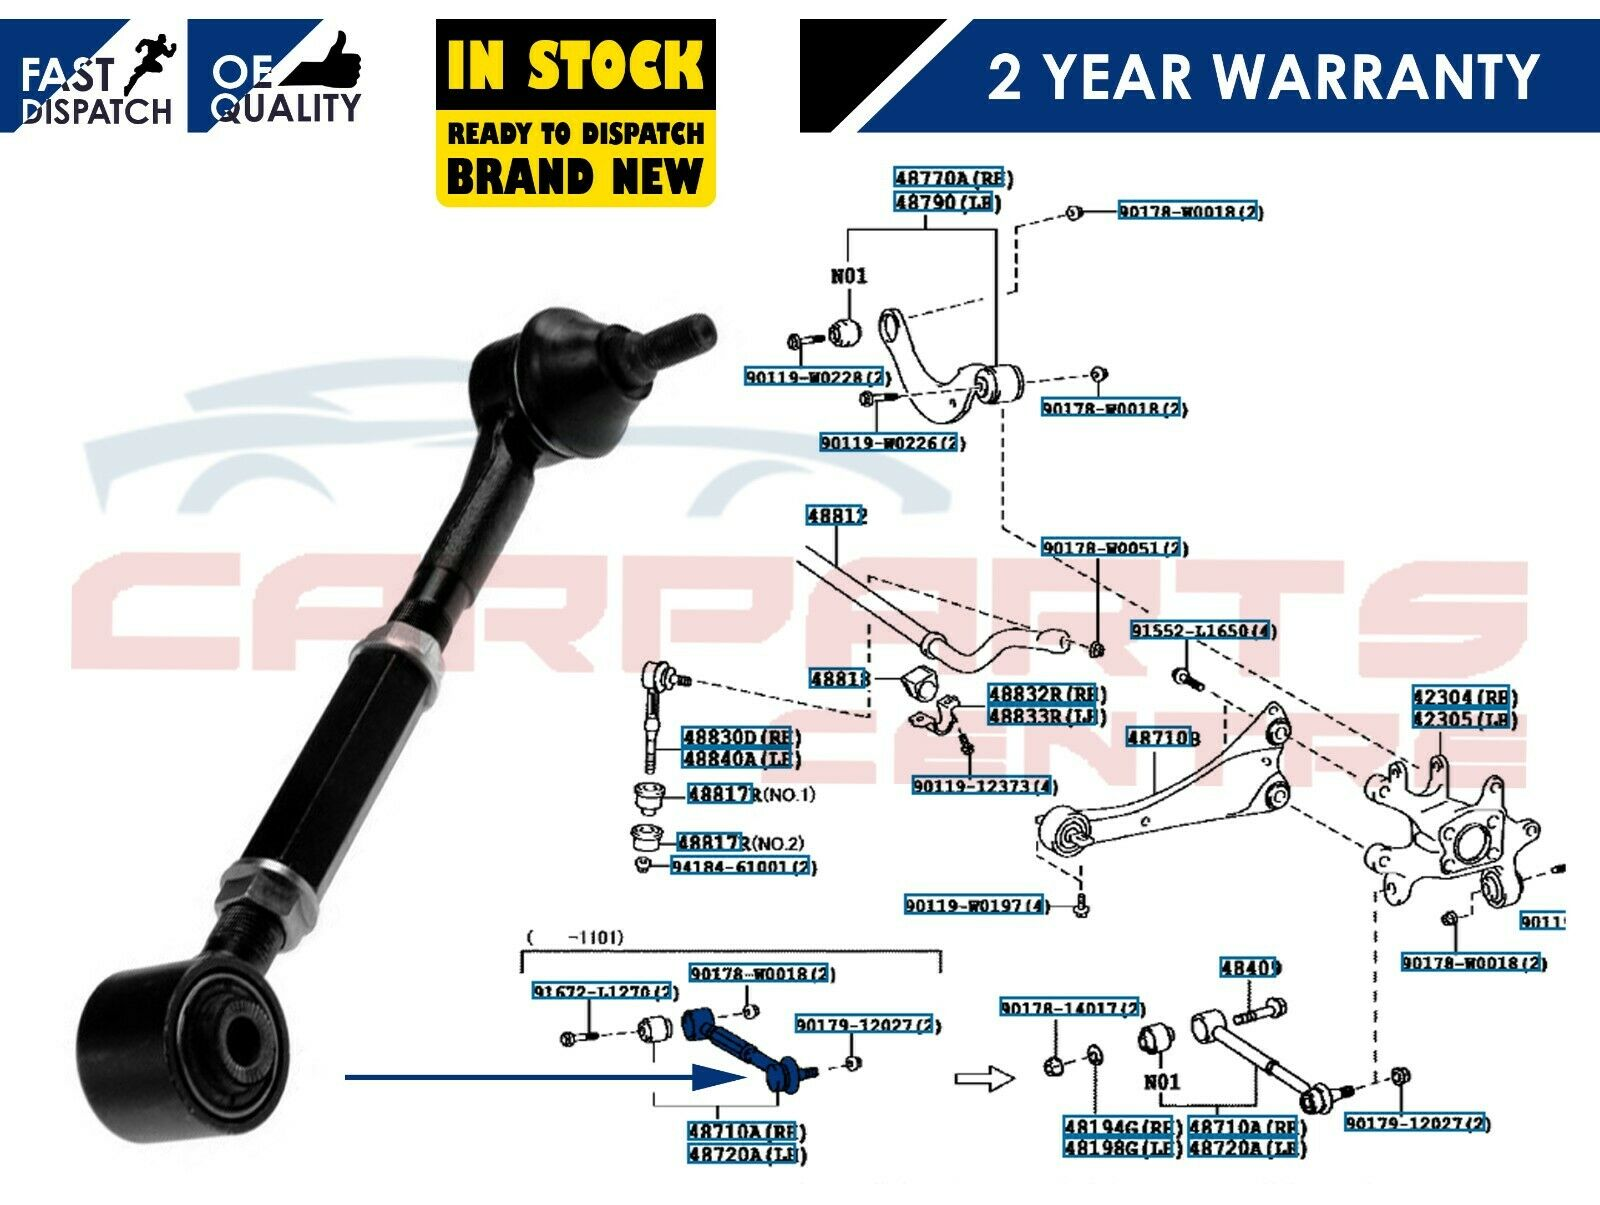 FOR TOYOTA AURIS AVENSIS 07-11 REAR LEFT OR RIGHT TRACK CONTROL WISHBONE ARM